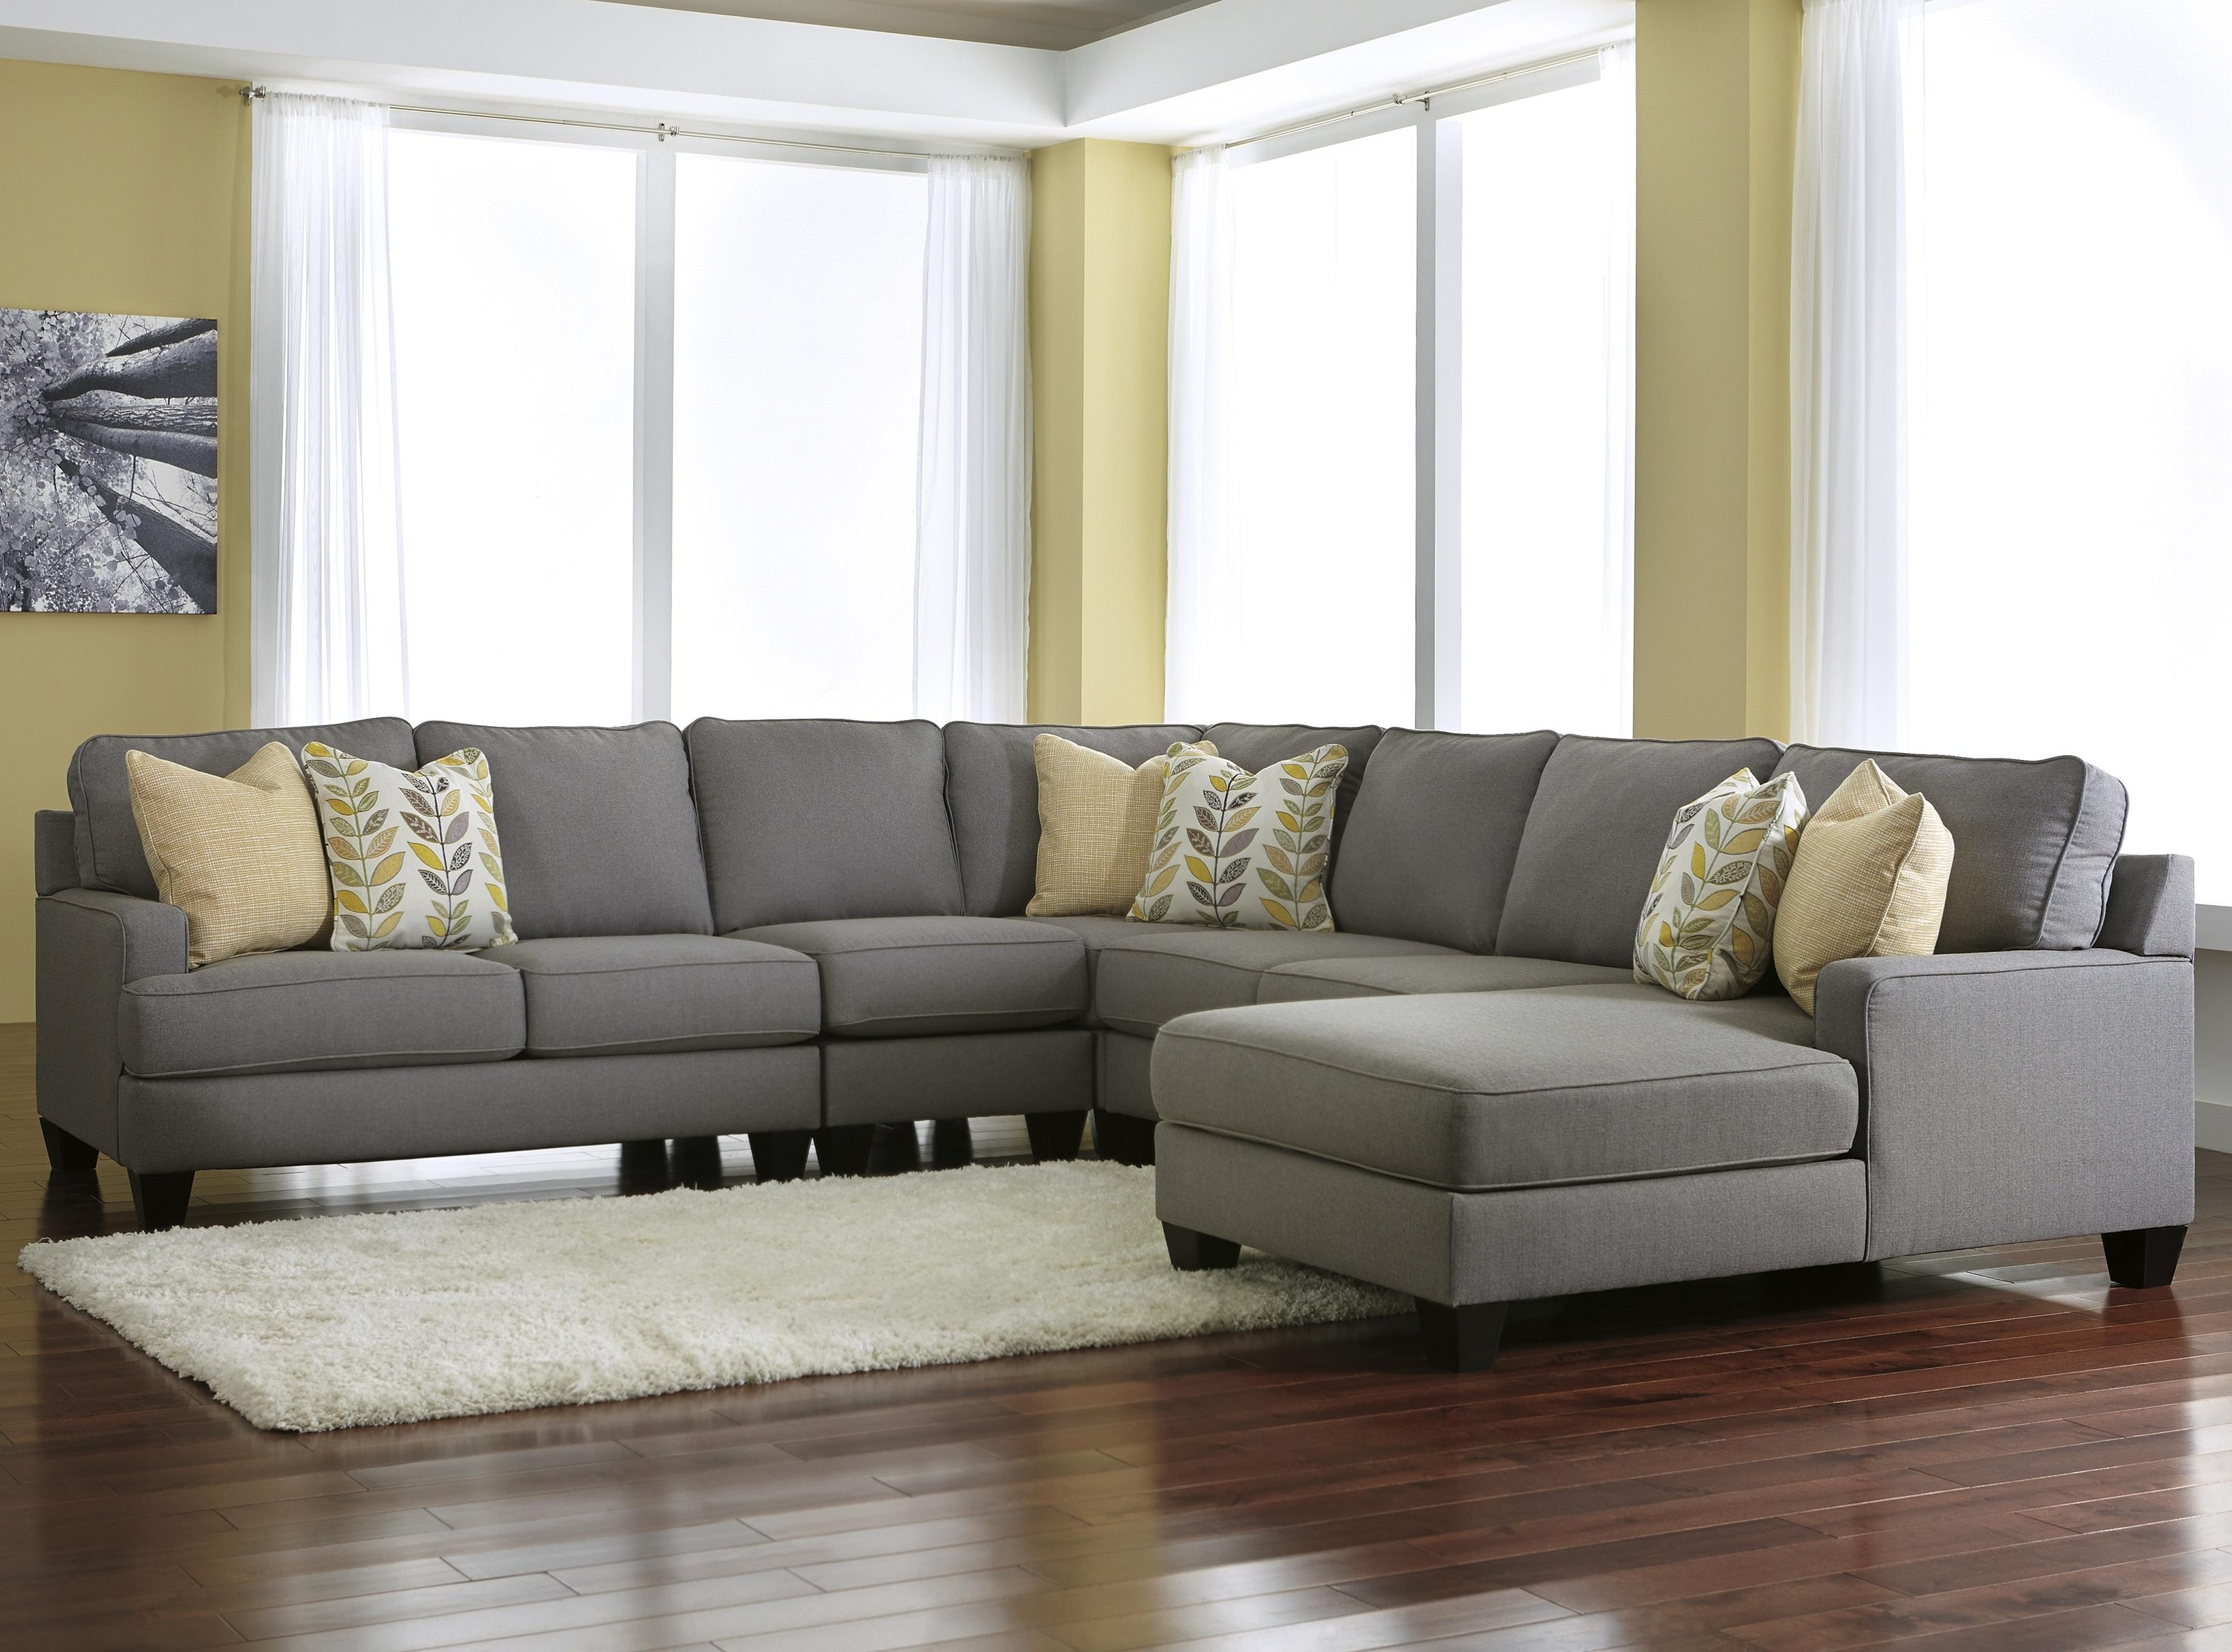 Signature Designashley Chamberly – Alloy Modern 5 Piece With Regard To Latest Kansas City Mo Sectional Sofas (View 14 of 15)